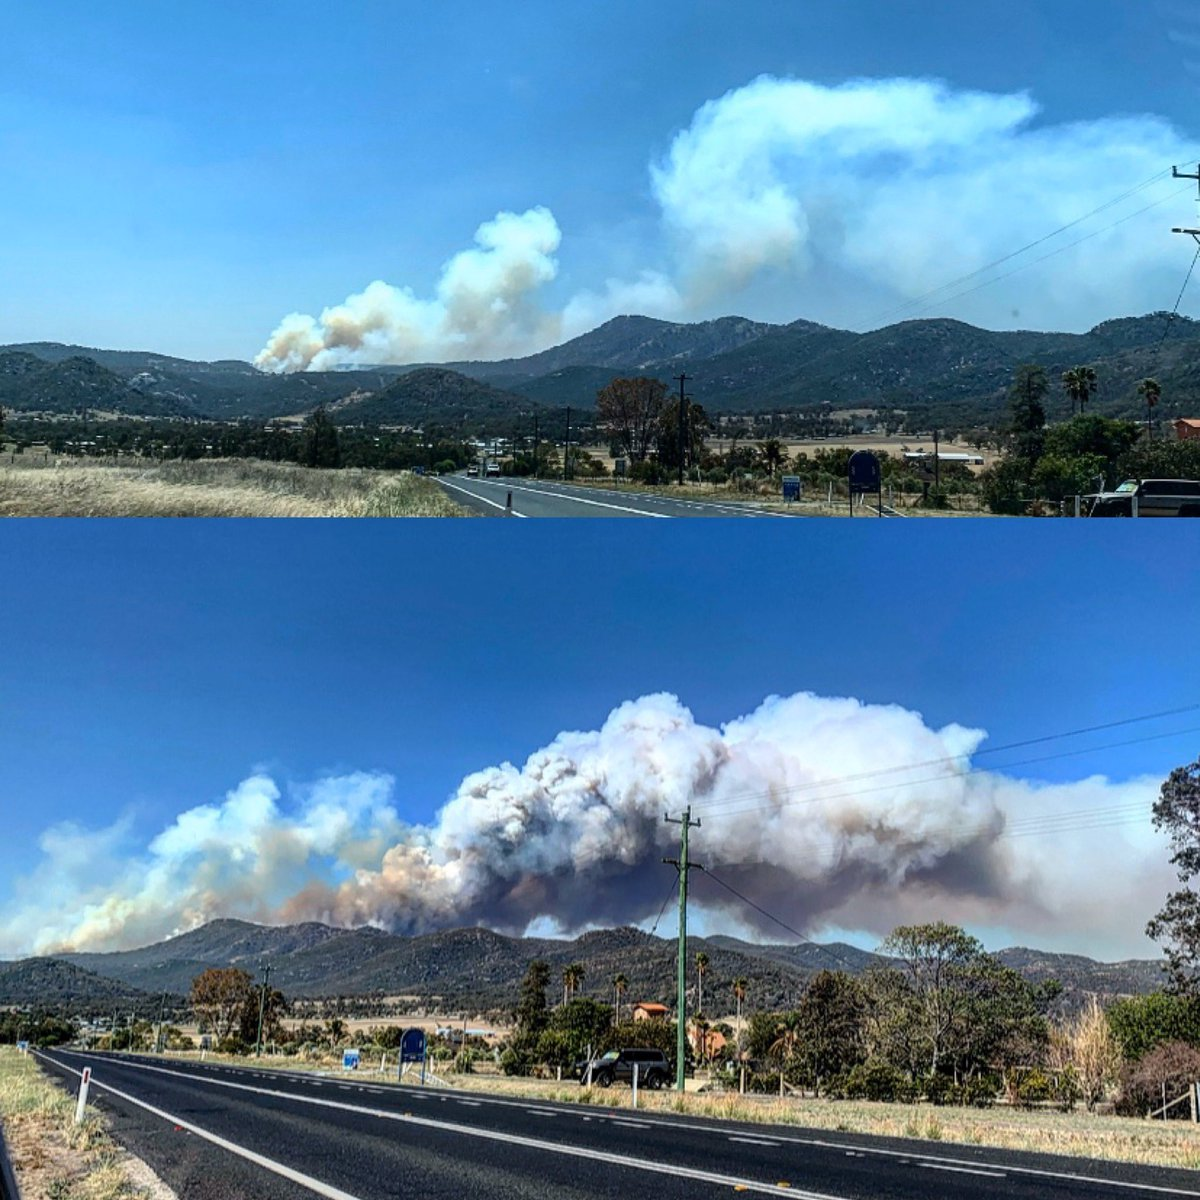 Top photo taken at 12:30pm  Bottom photo at 4pm  #moonbifire #bushfire #bushfirensw   Thank you to all the amazing men and woman out fighting all these fires that Are burning across our country. https://t.co/qhbPYzR7eQ